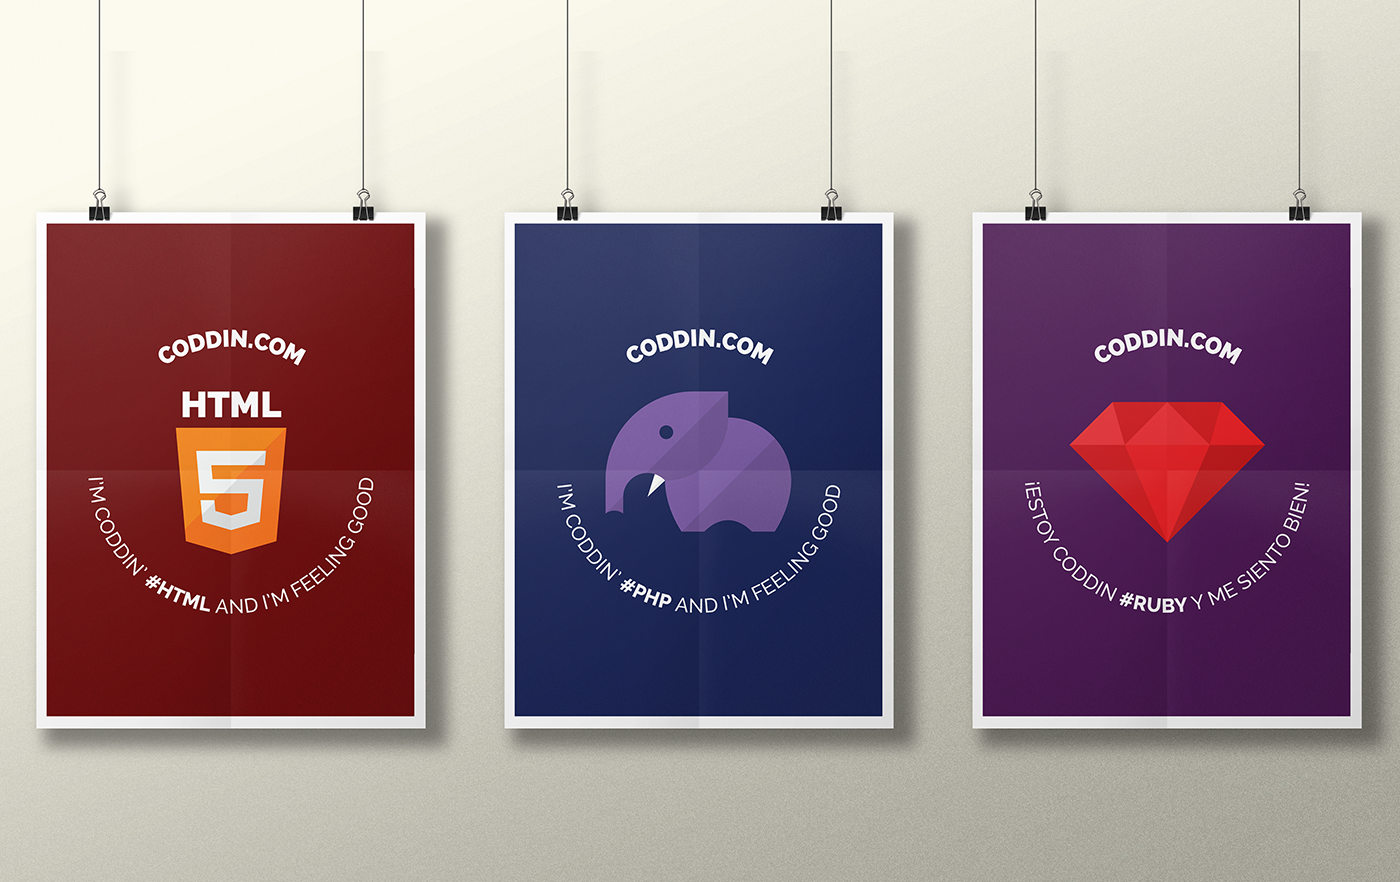 Mugs Business Cards tshirts poster geek hackers Developers t-shirt pins buttons Startup Badges illustrations vector flat